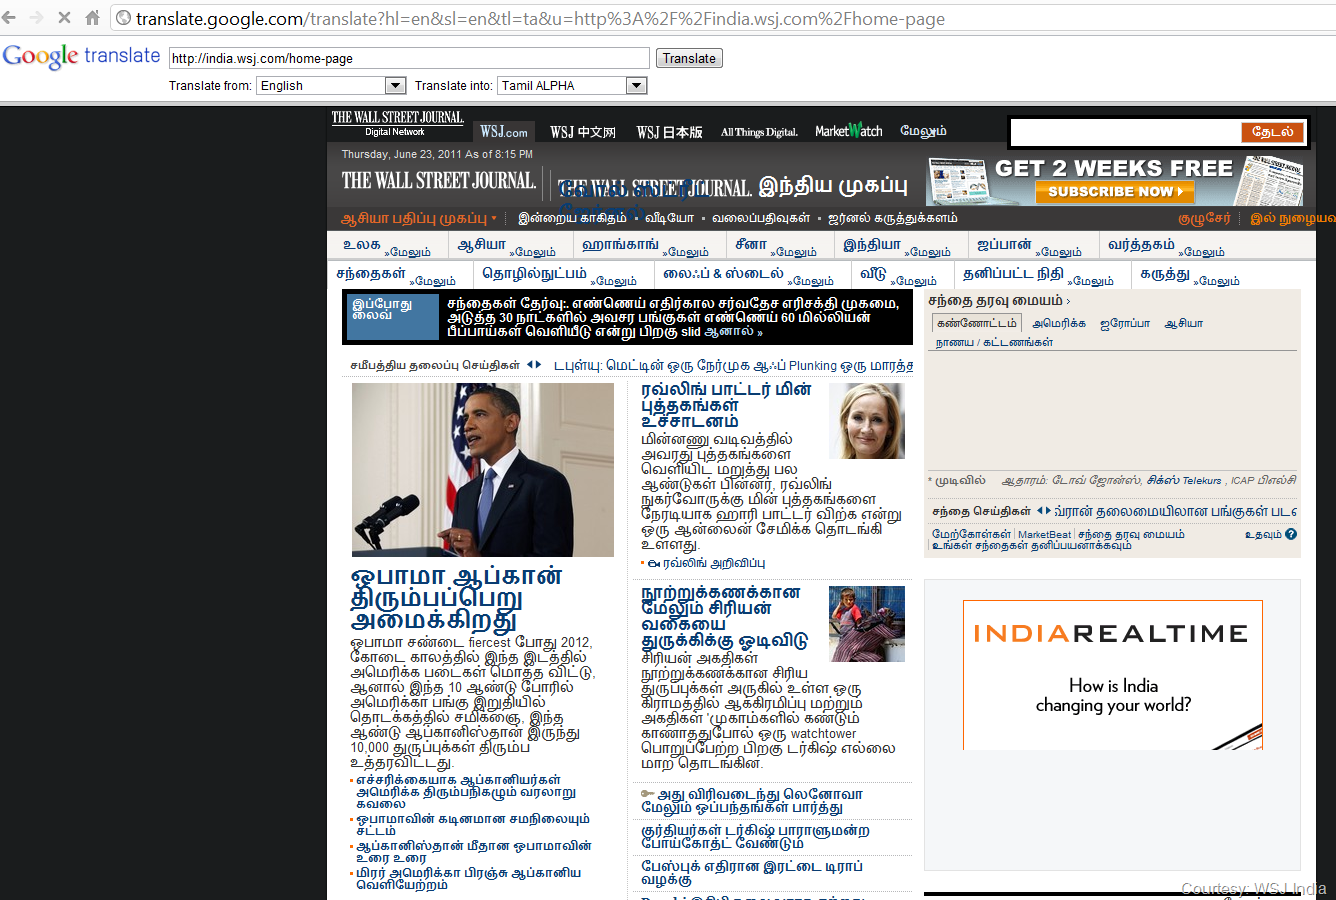 WSJ homepage translated from English to Tamil